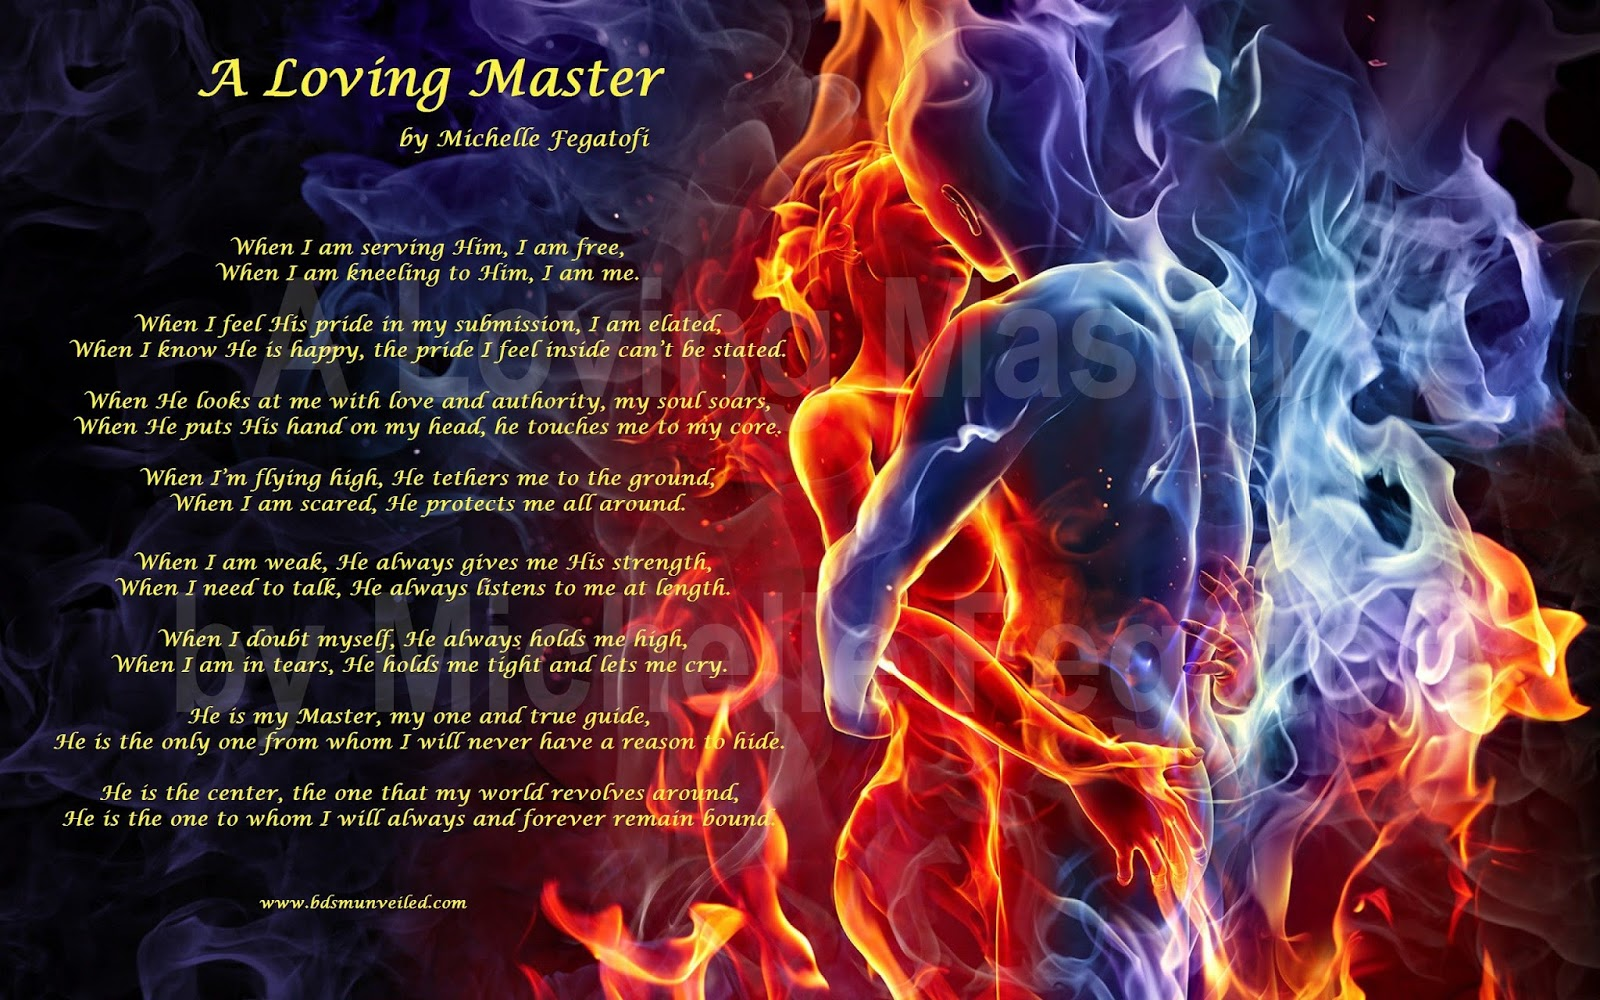 A Loving Master by Michelle Fegatofi